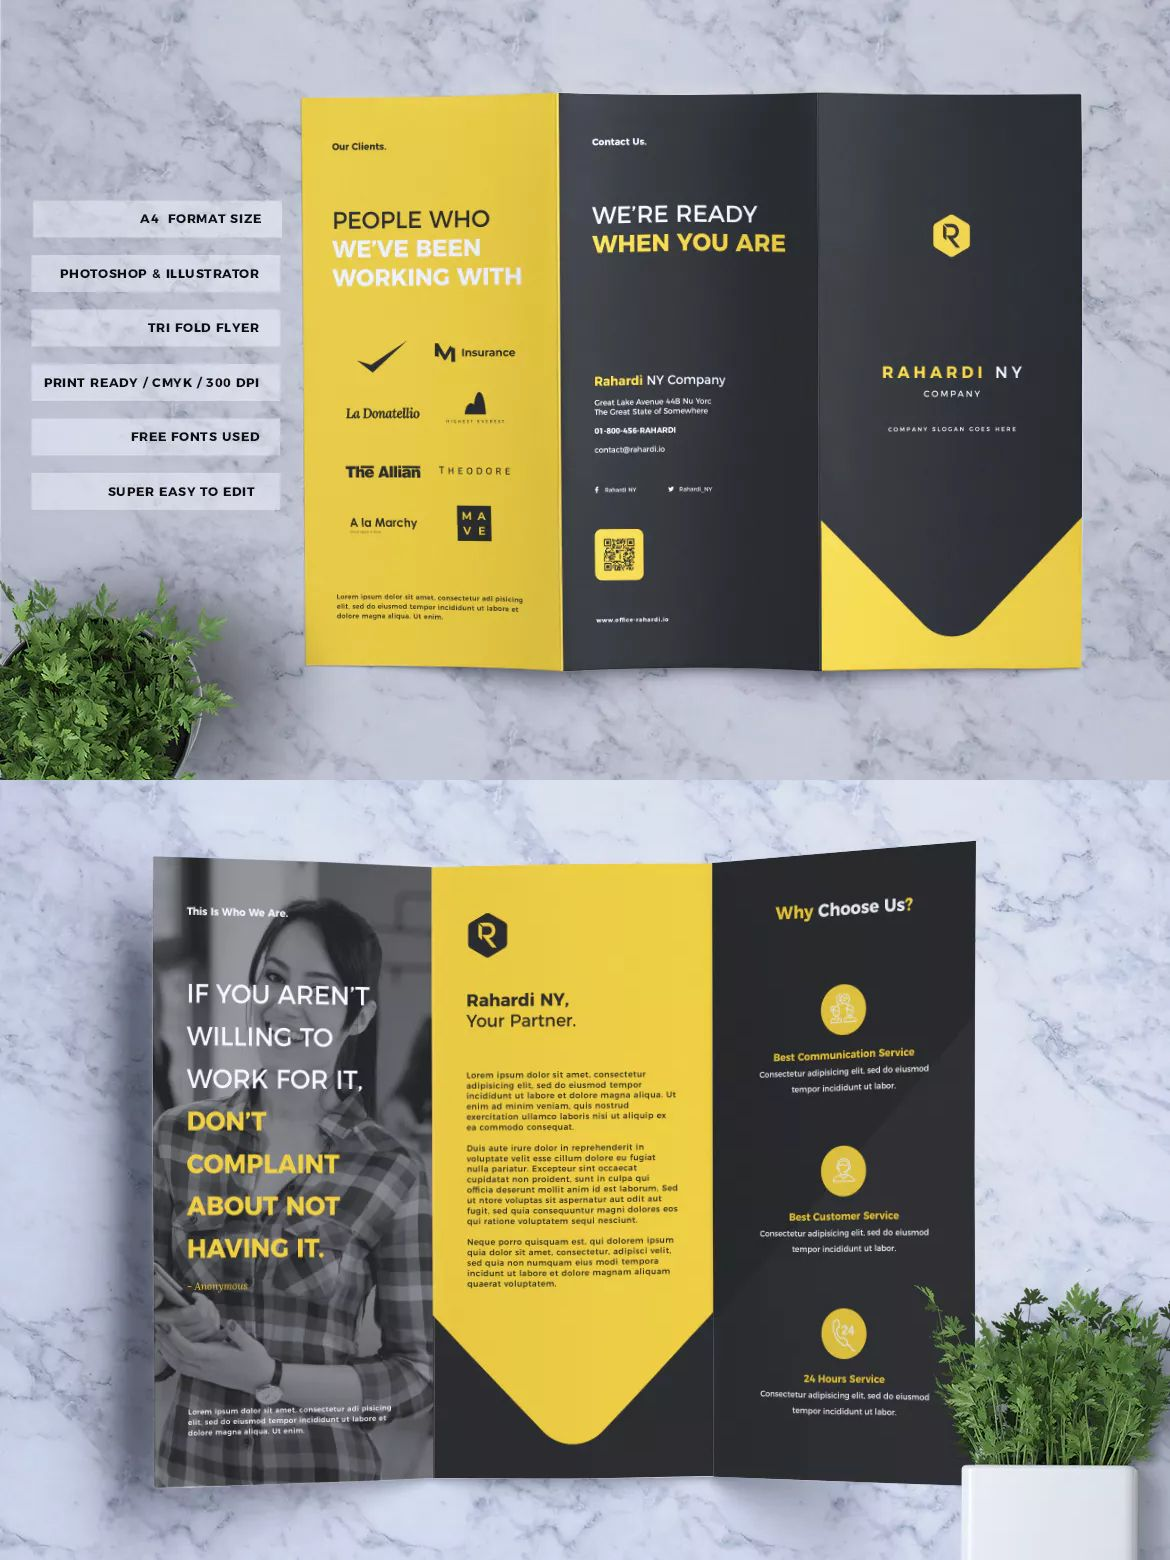 Corporate Business Trifold Flyer Vol 03 By Rahardicreative On Envato Elements Trifold Brochure Template Brochure Template Psd Brochure Psd Tri fold brochure photoshop template